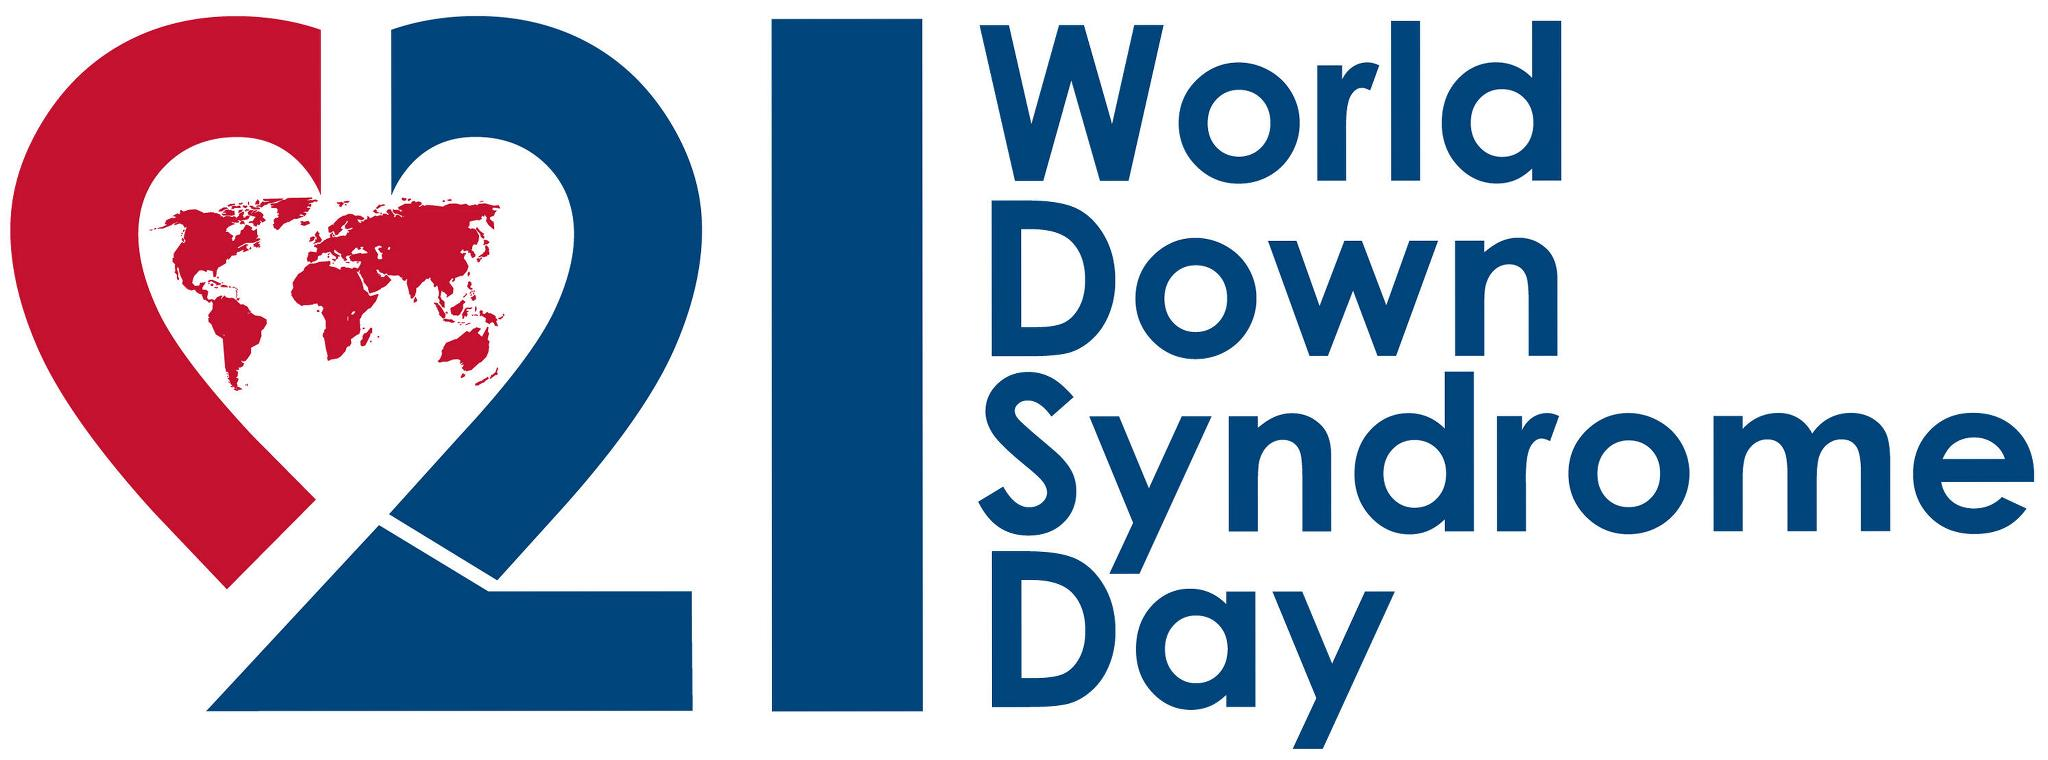 World Down Syndrome Day 2015 Down Syndrome Day on 3/21